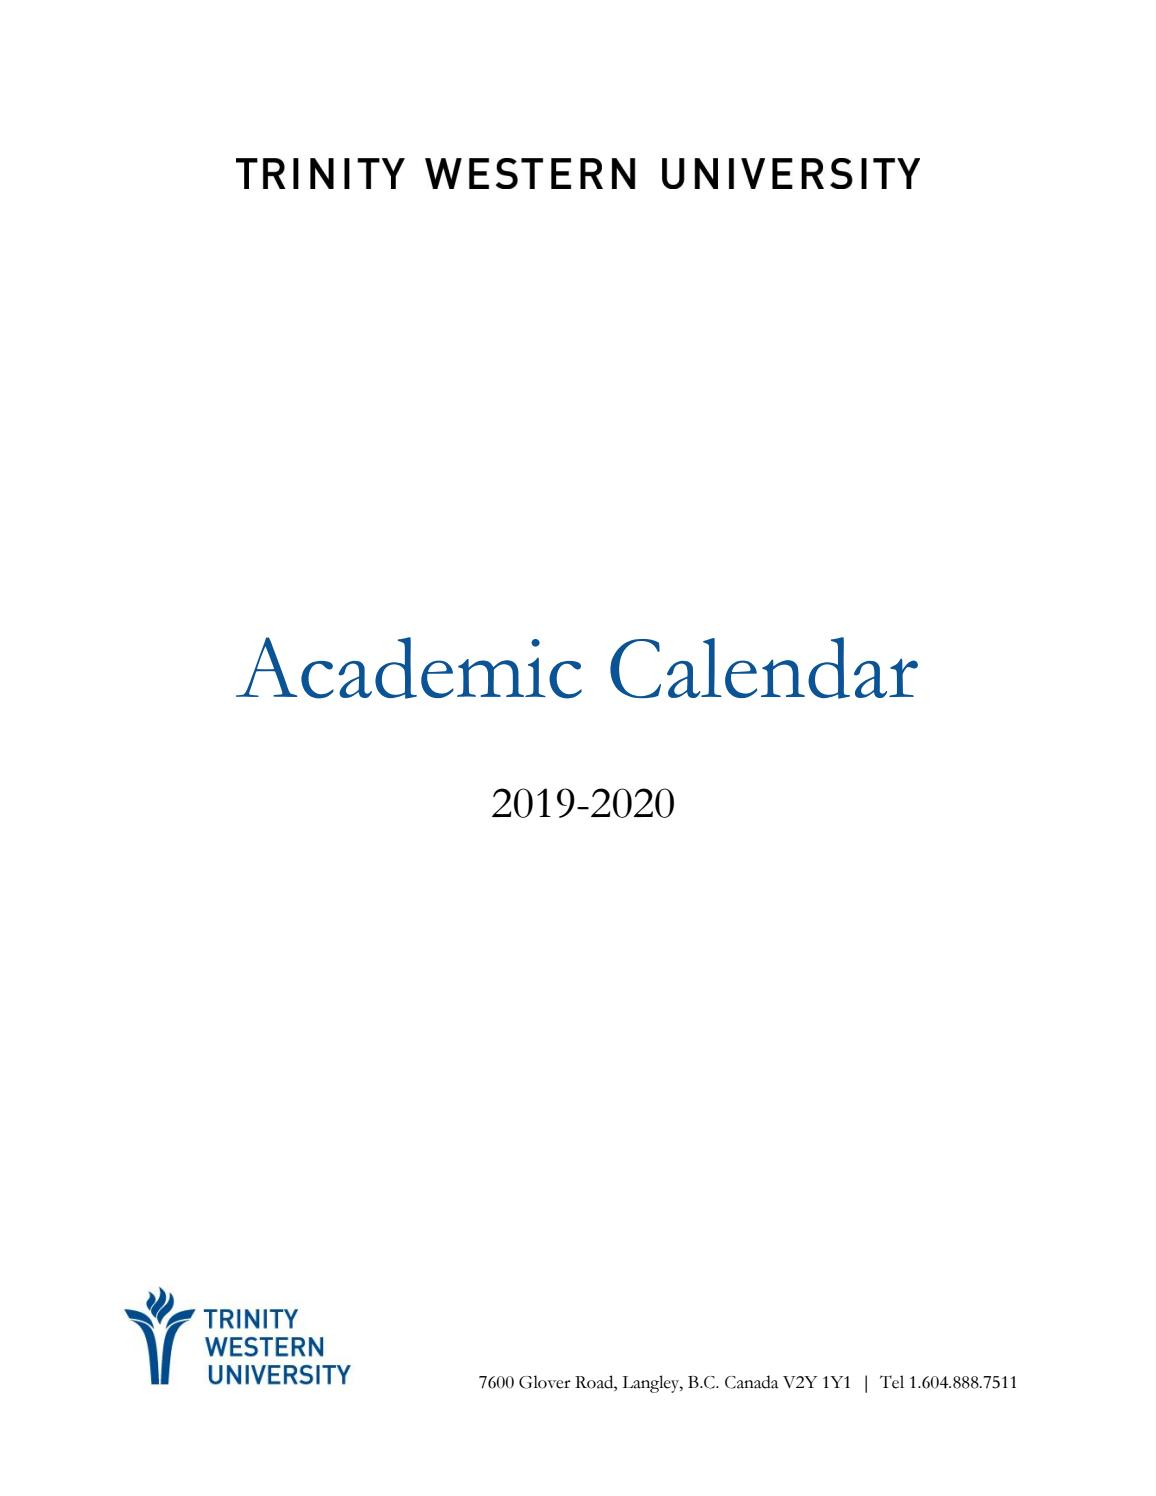 Academic Calendar 20192020 By Twu  Issuu intended for Triple C School Calendar 2020